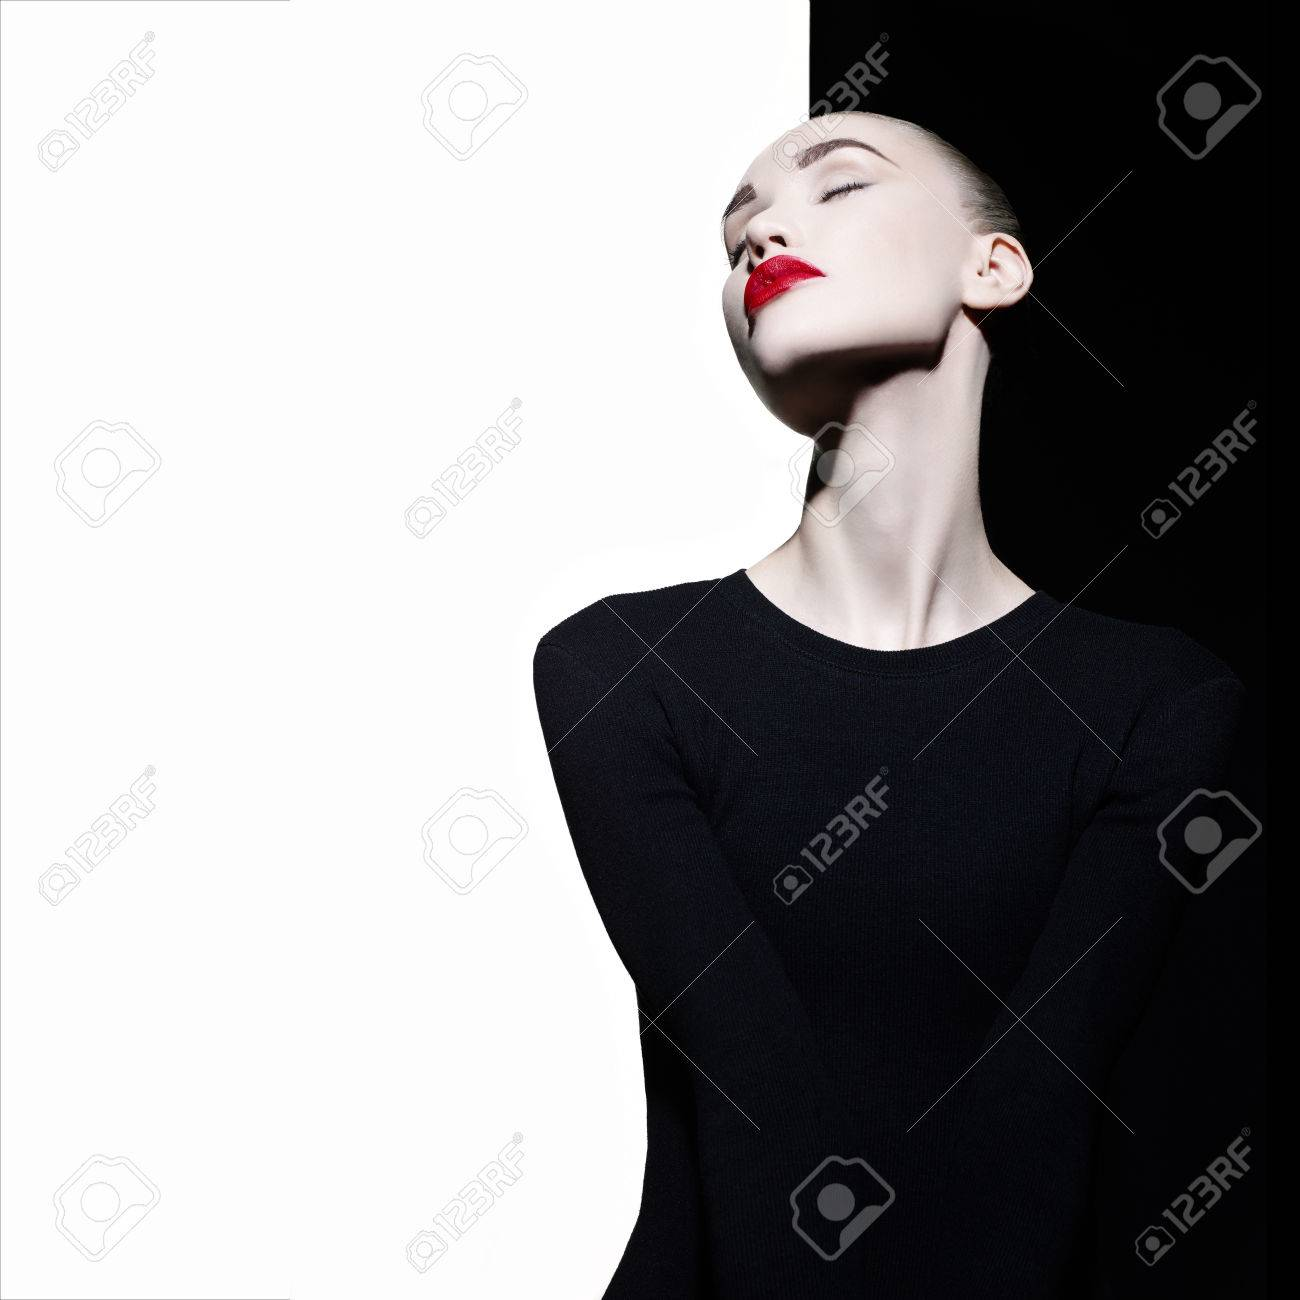 Fashion art studio portrait of elegant blode in geometric black and white background Standard-Bild - 56305965